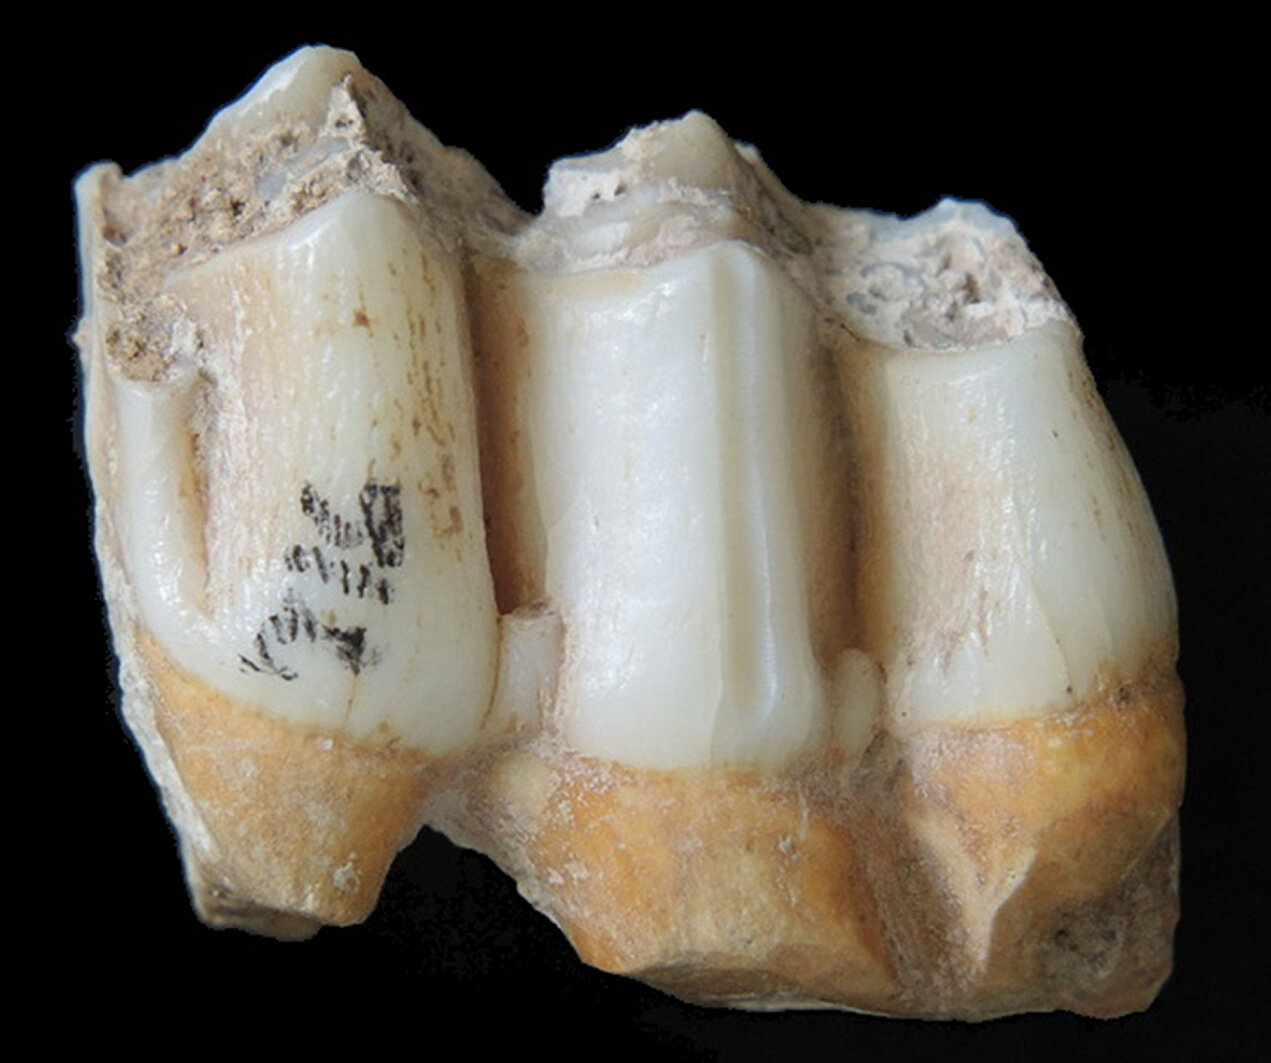 A new method of analysis of teeth allowed to determine the diet of fossil mammals